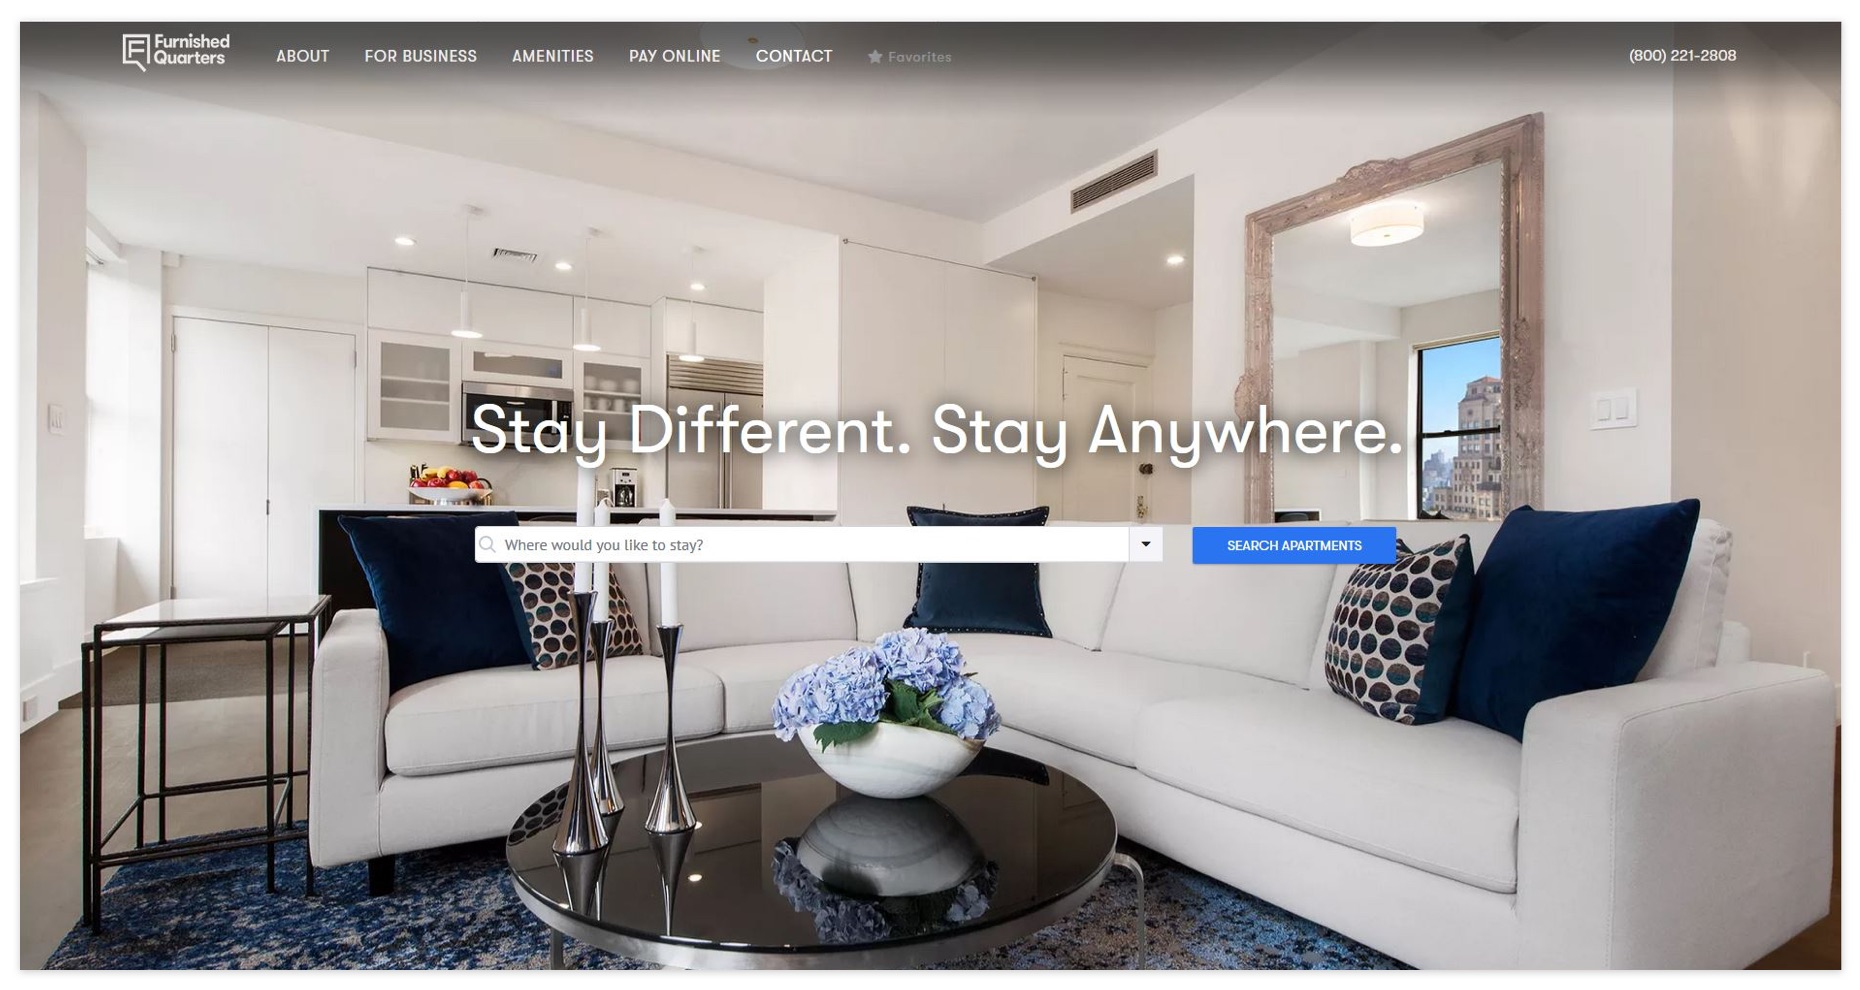 A screenshot of the Furnished Quarters homepage